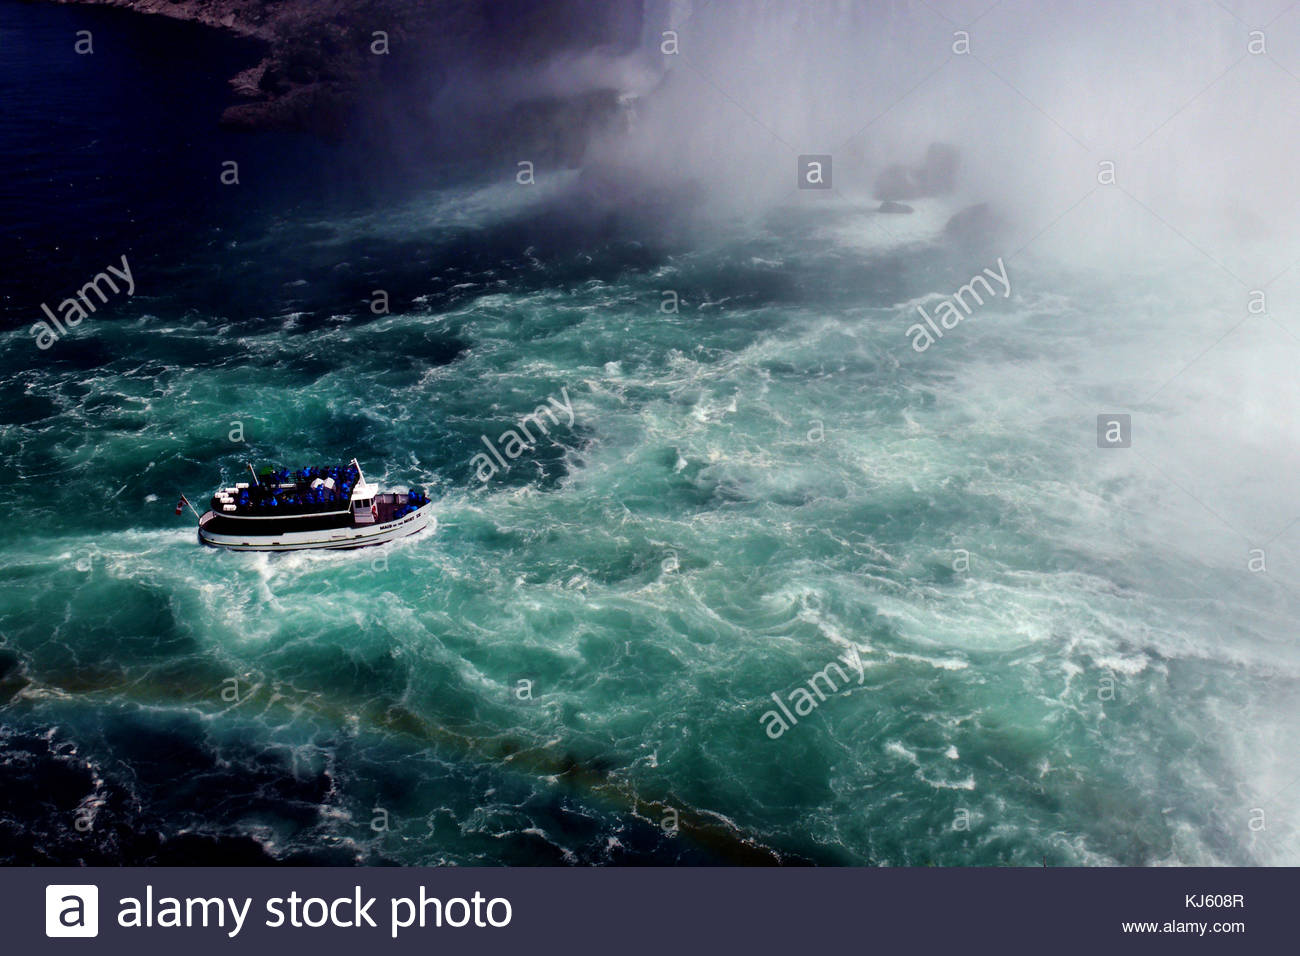 Tour boat by Niagra Falls - Stock Image